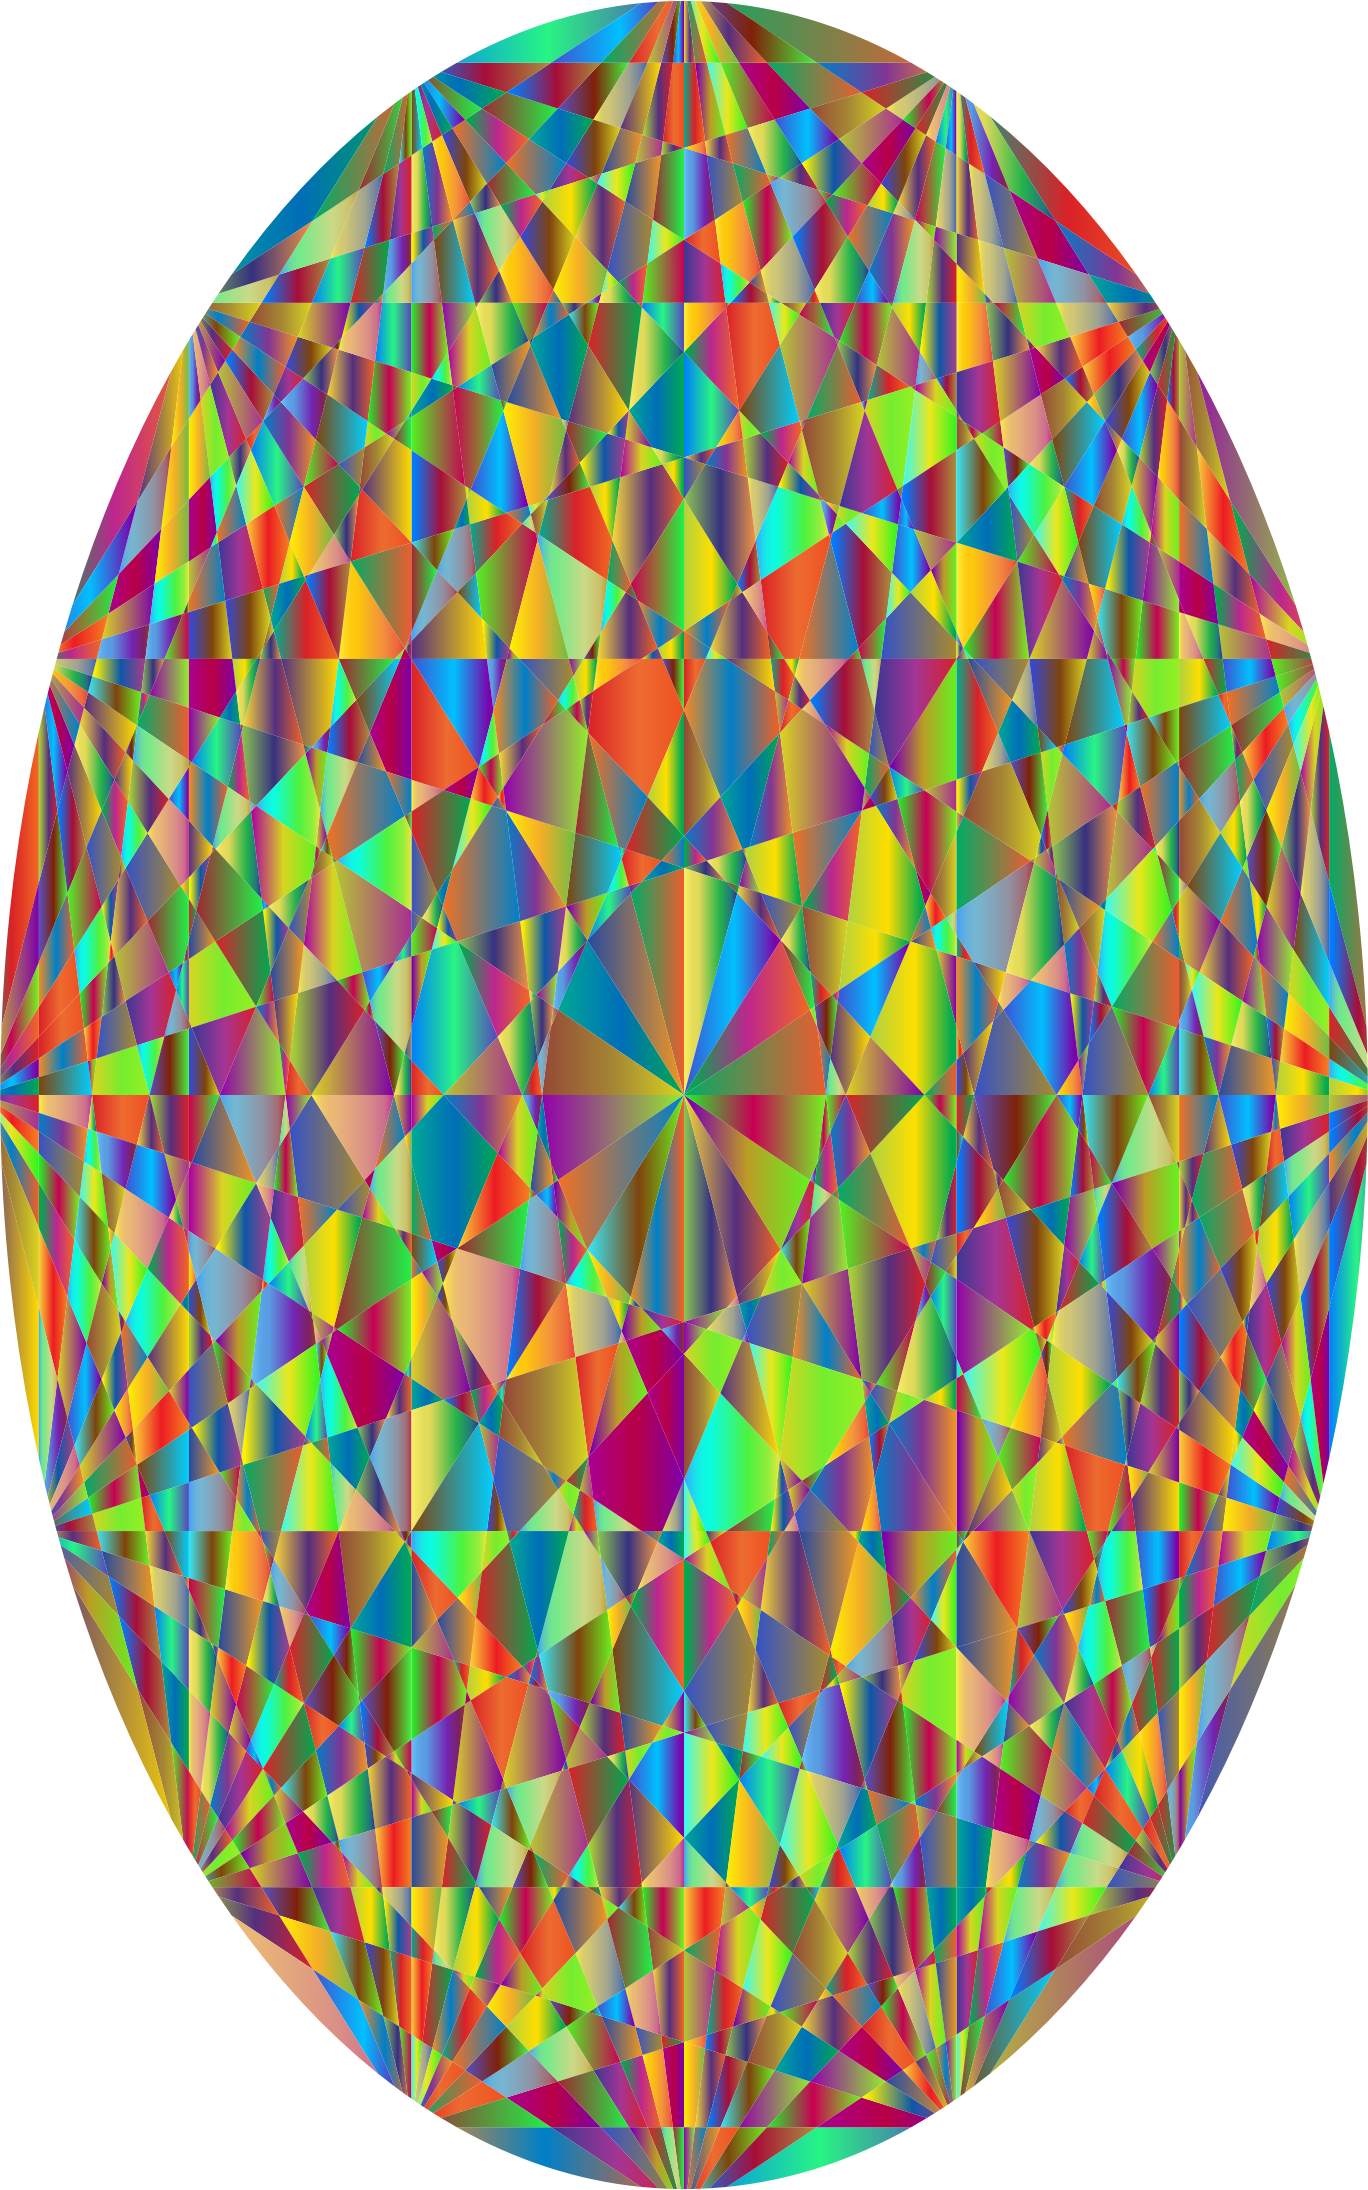 Prismatic Easter Egg 3 by GDJ